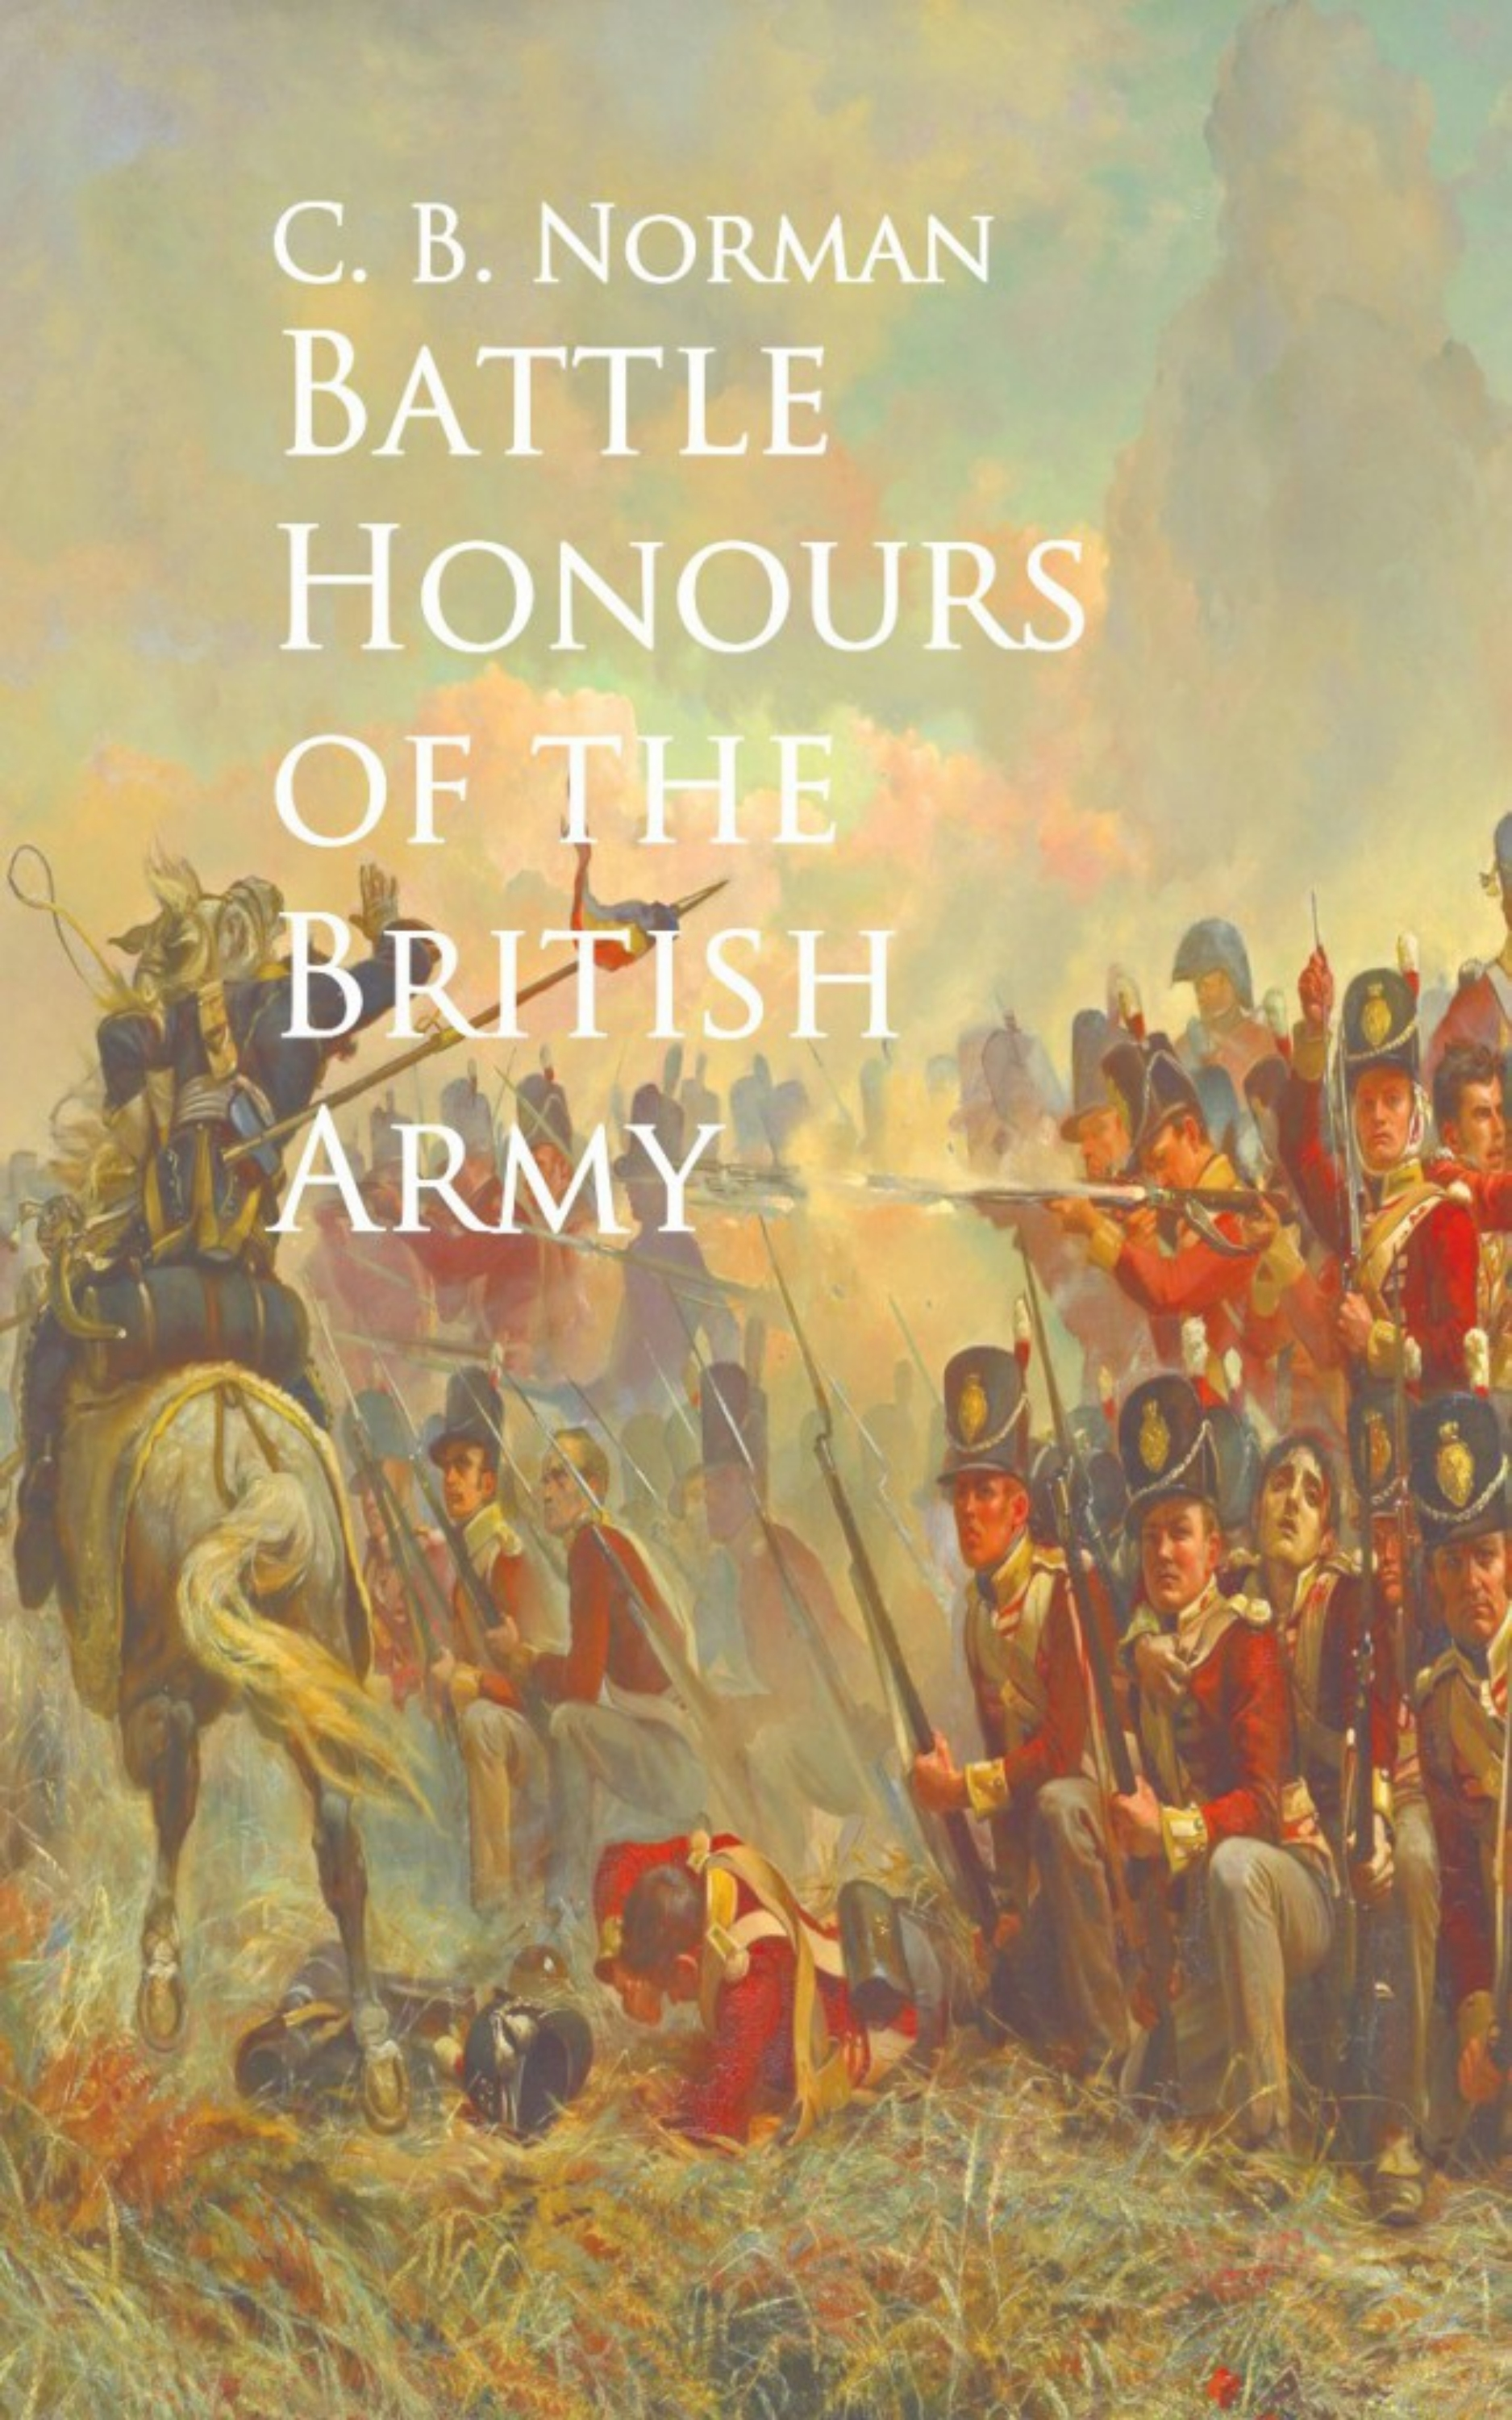 C. B. Norman Battle Honours of the British Army army of lovers army of lovers big battle of egos